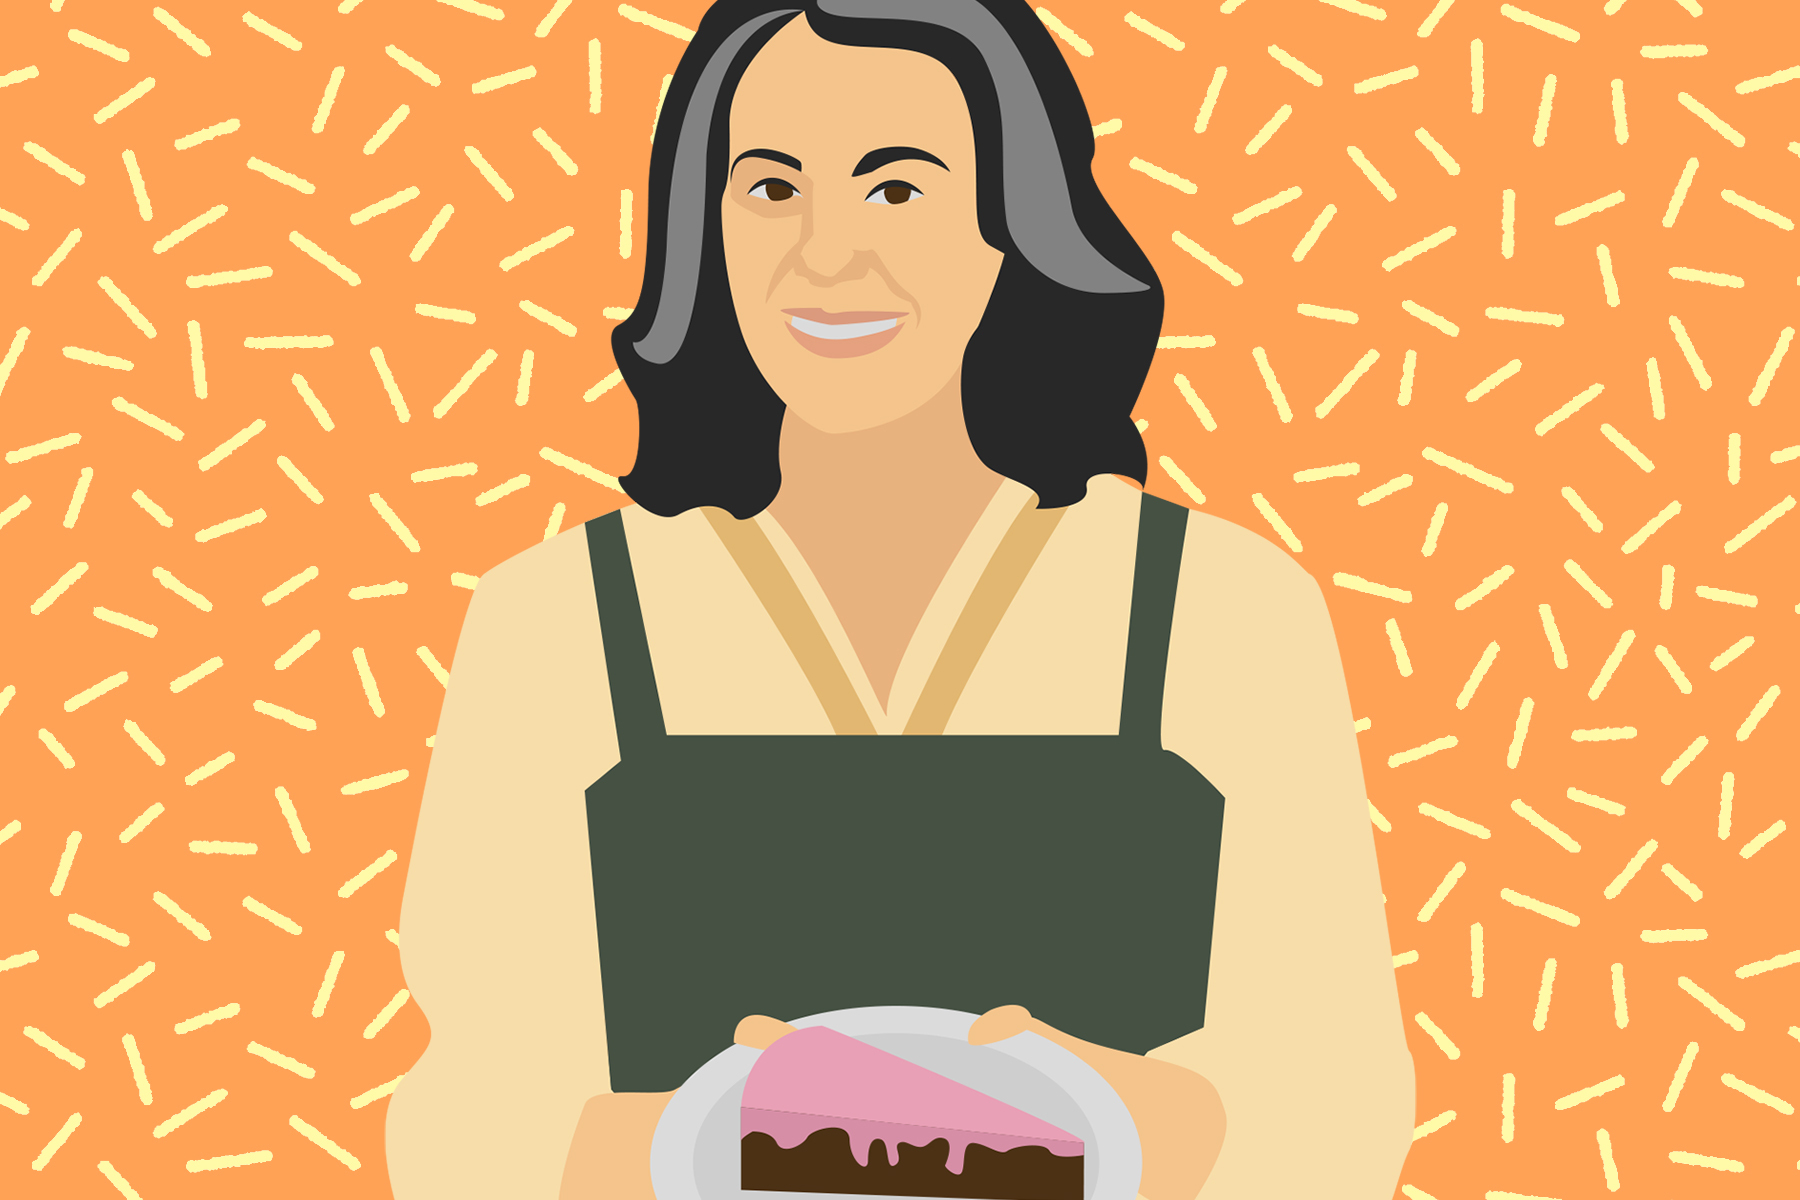 An illustration of Claire Saffitz, a baking personality on YouTube.